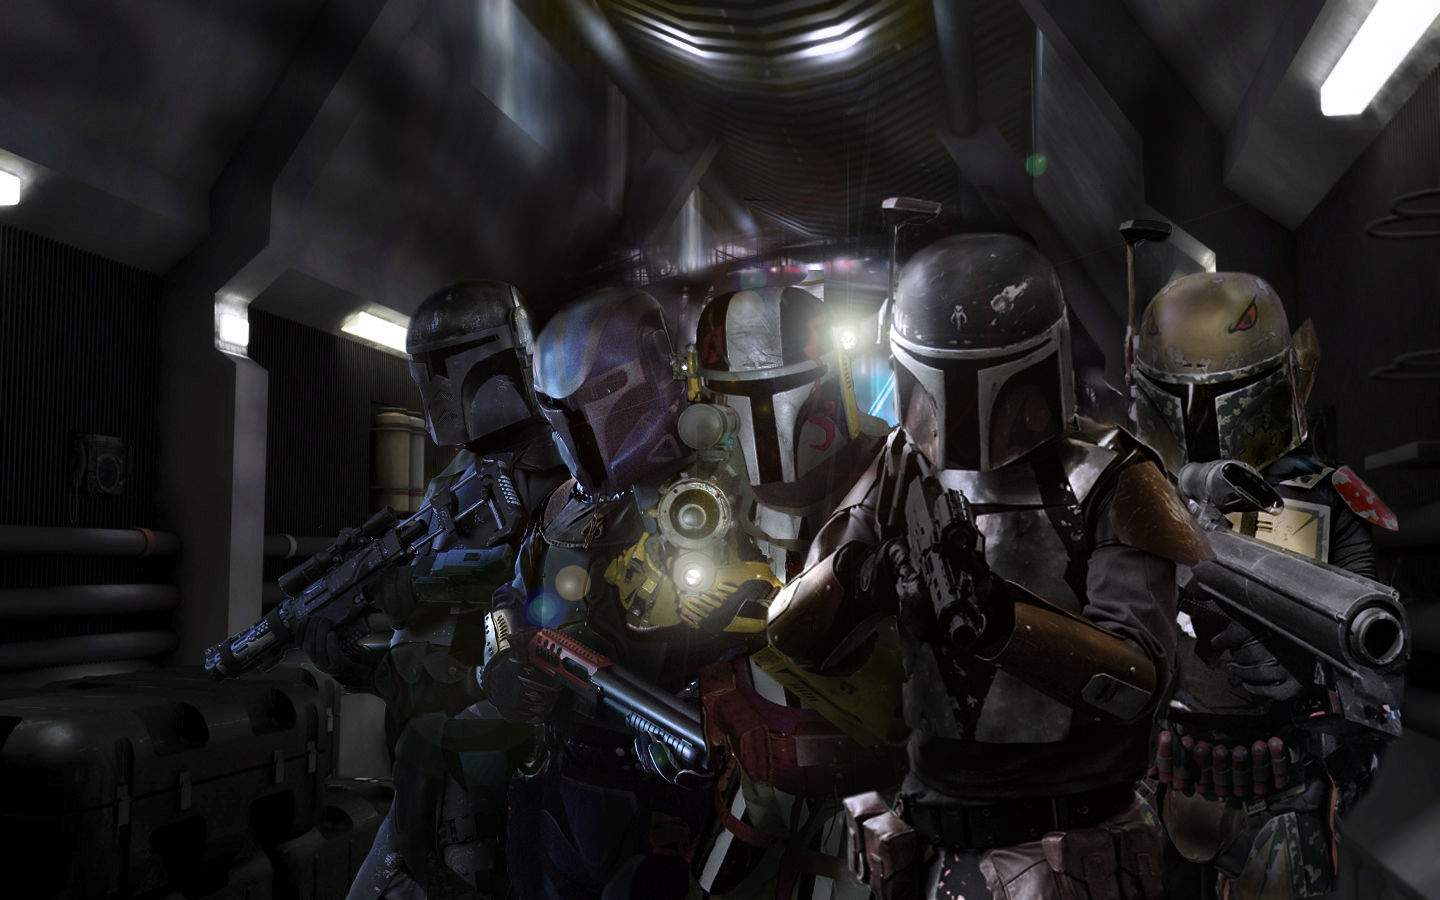 mandalorians-star-wars-episode-7-does-this-mean-we-ll-see-boba-fett-jpeg-86386